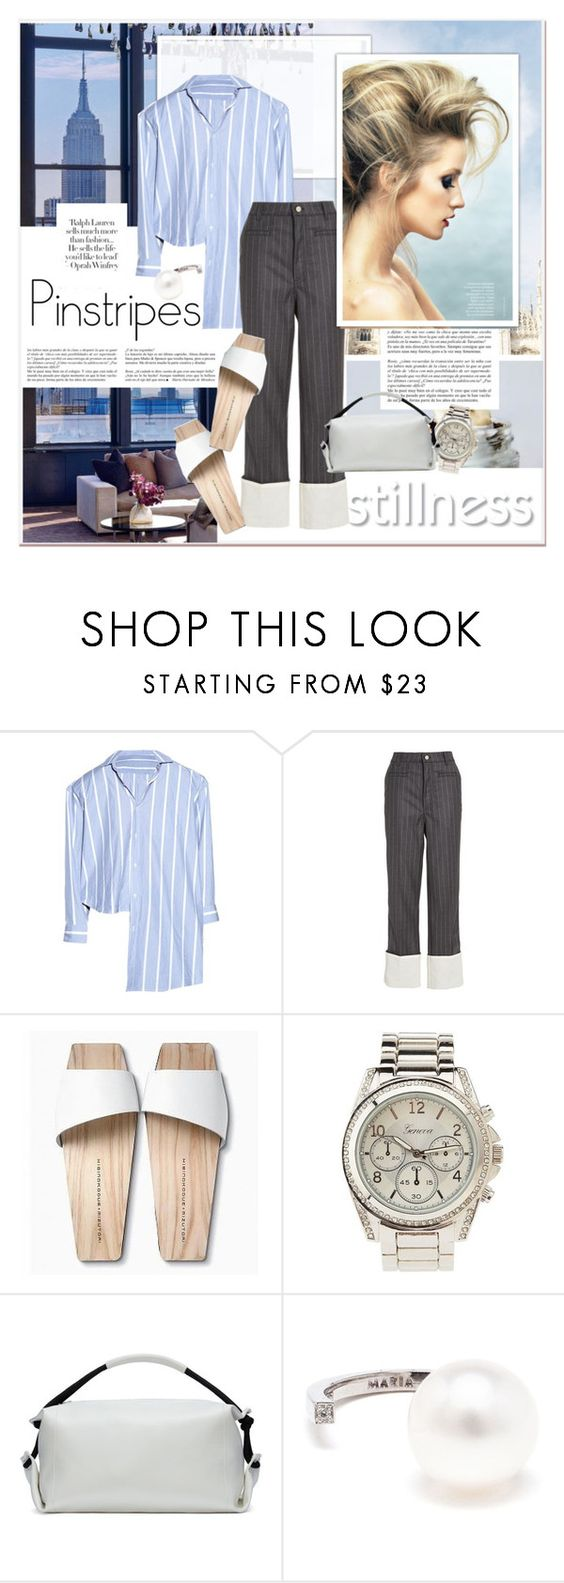 """""""Stilness Pinstripes"""" by stylemeup-649 ❤ liked on Polyvore featuring Whiteley, Loewe, Mizutori, Charlotte Russe, MM6 Maison Margiela, Maria Stern, WOOD, sandals, pinstripes and duffle"""